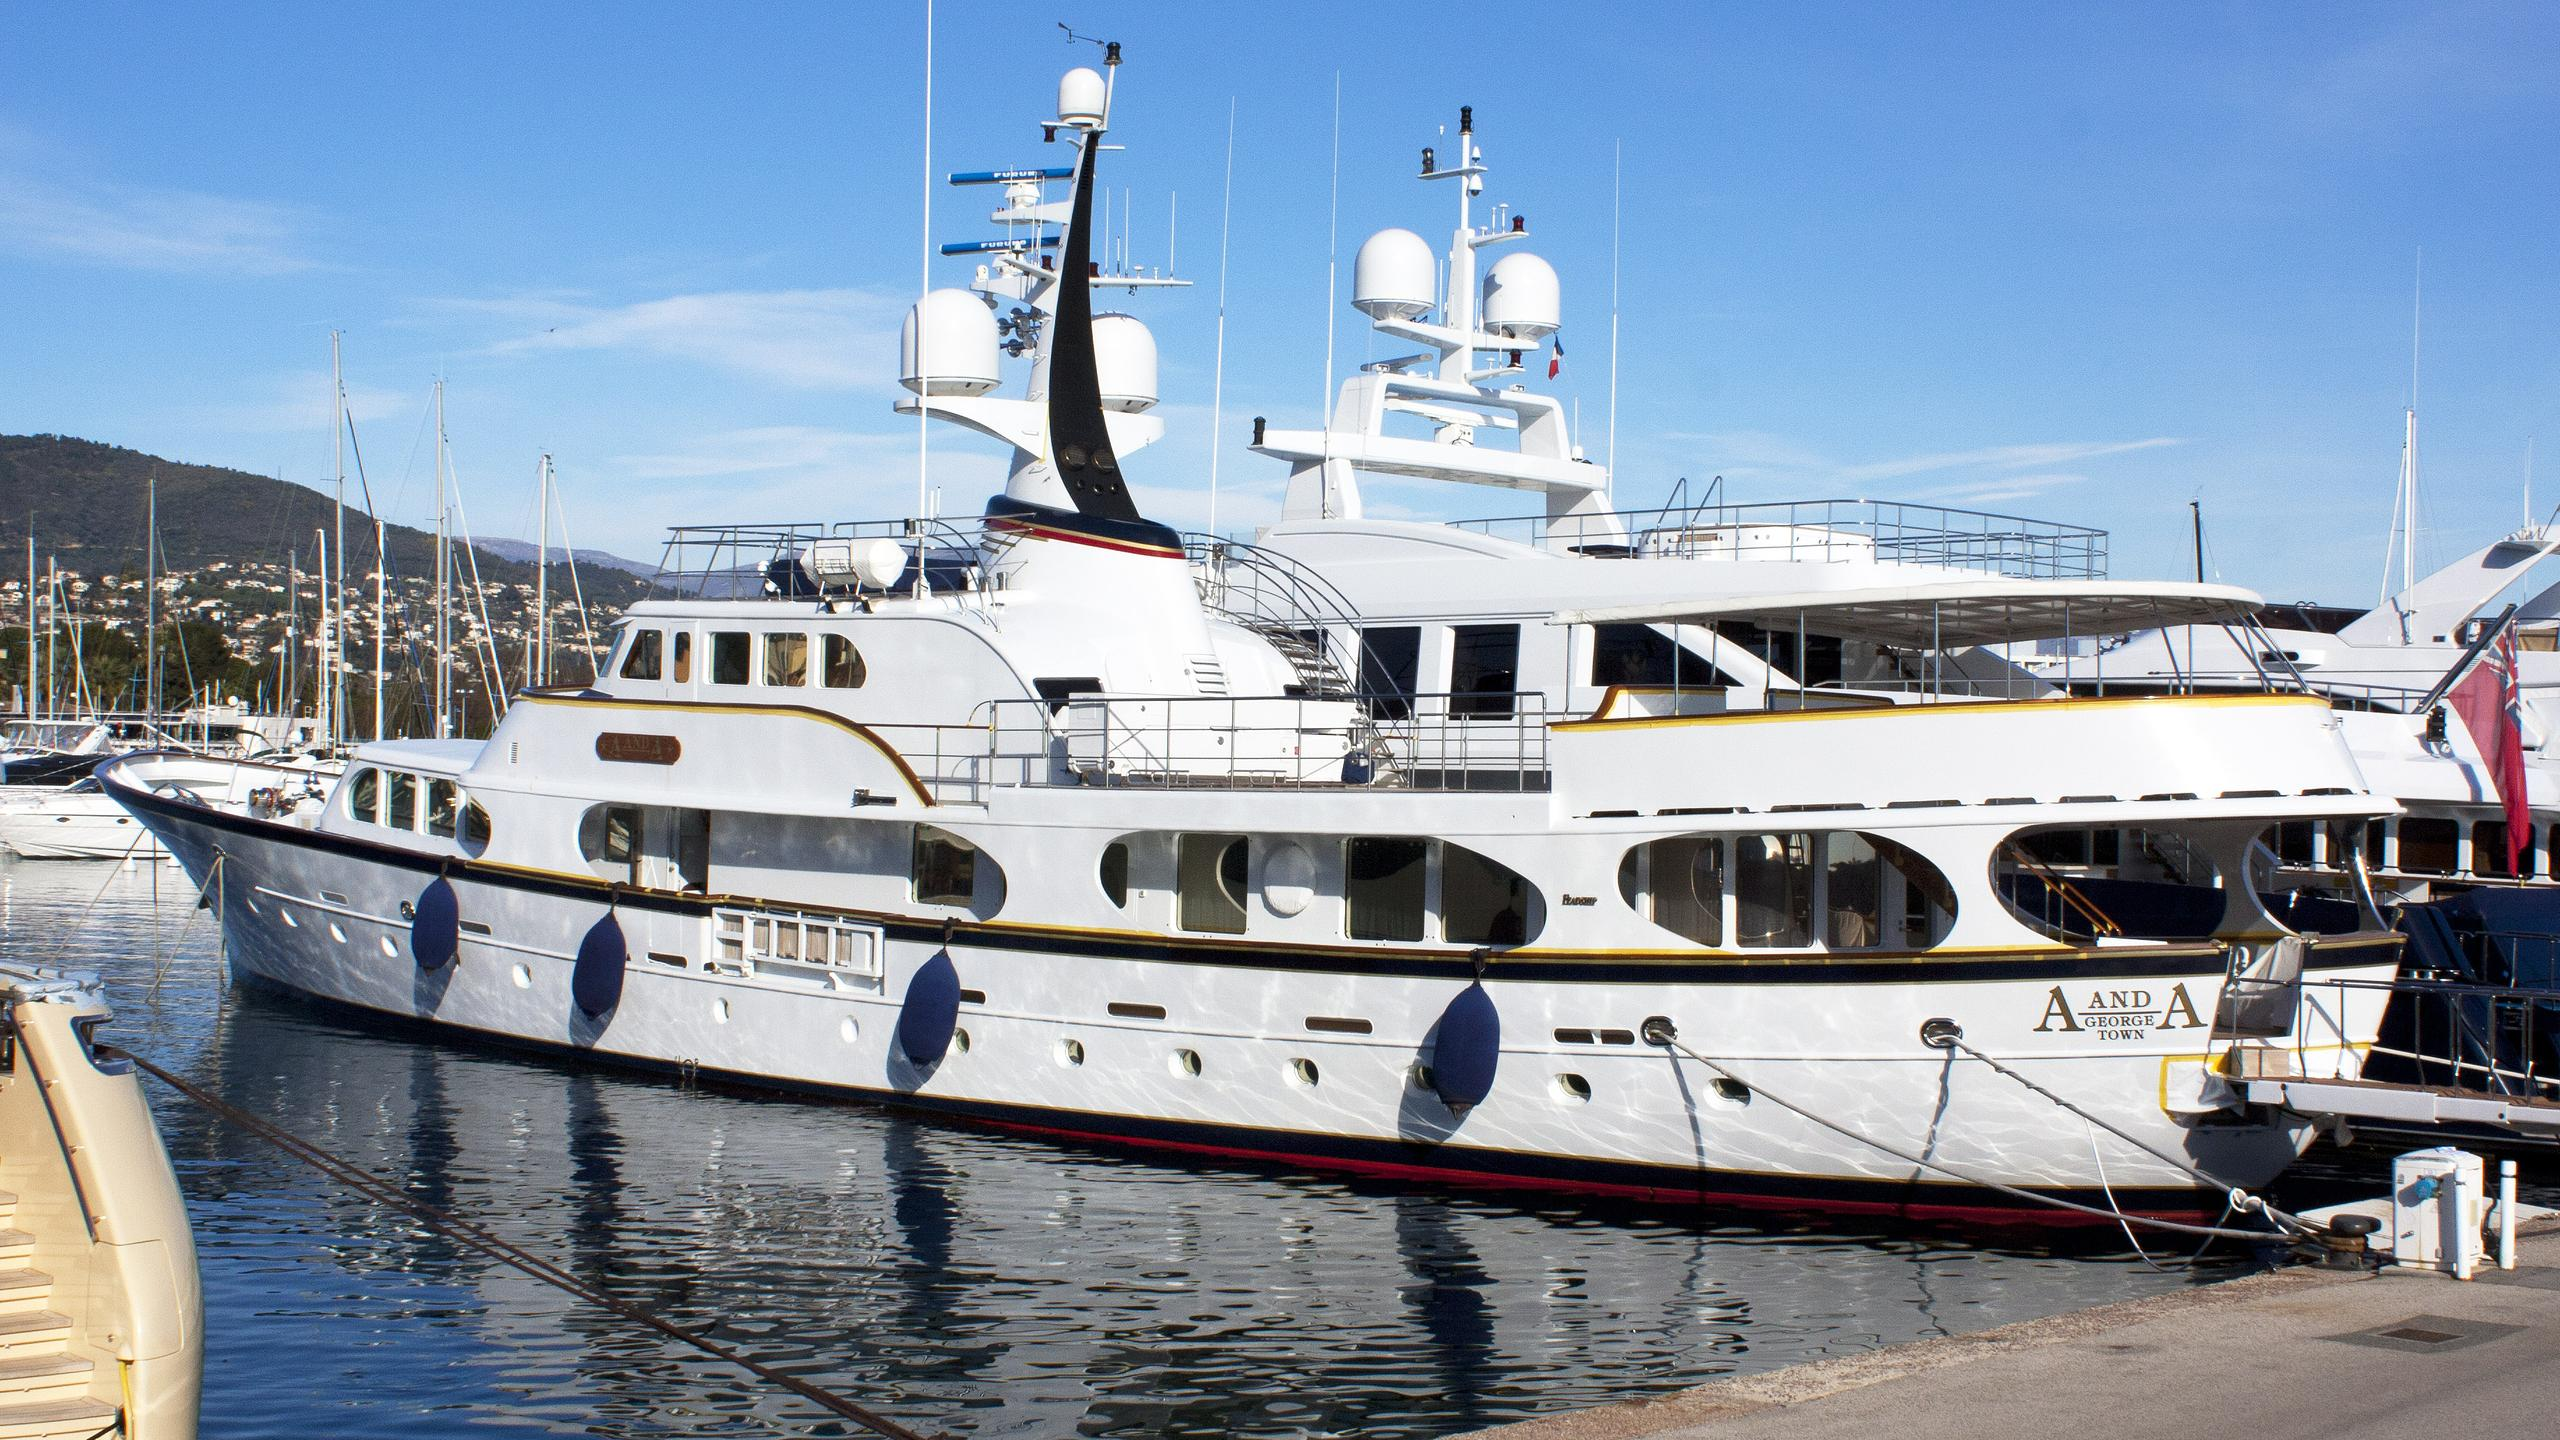 a-and-a-motor-yacht-feadhsip-1966-45m-half-profile